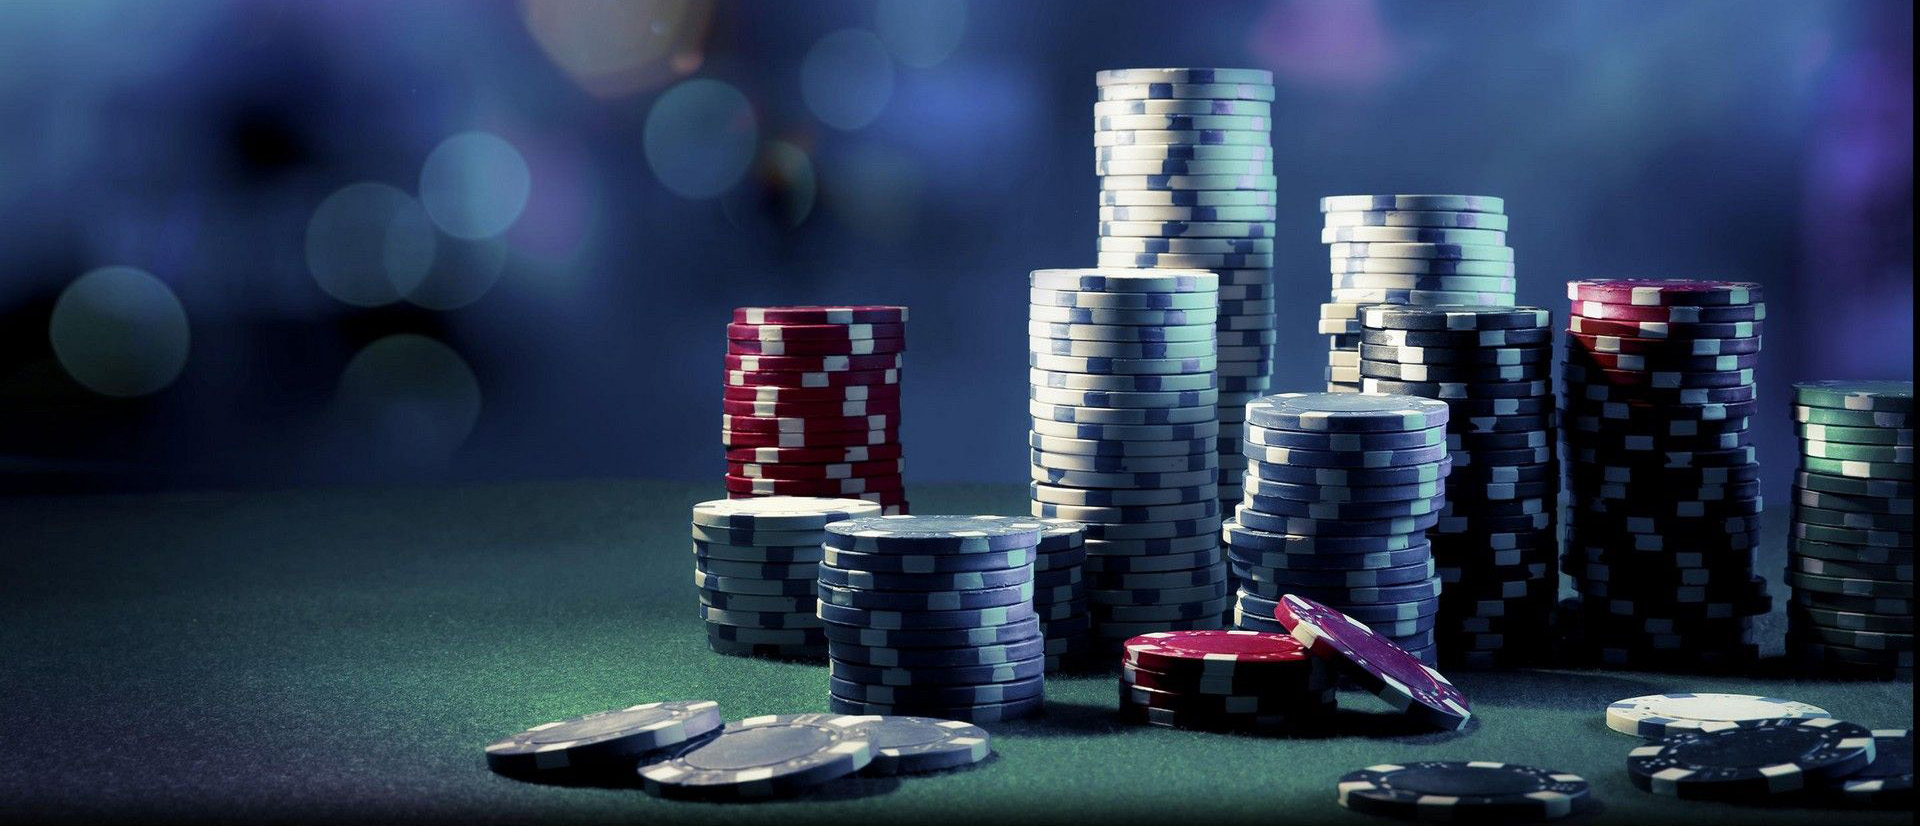 comparatif casinos en ligne